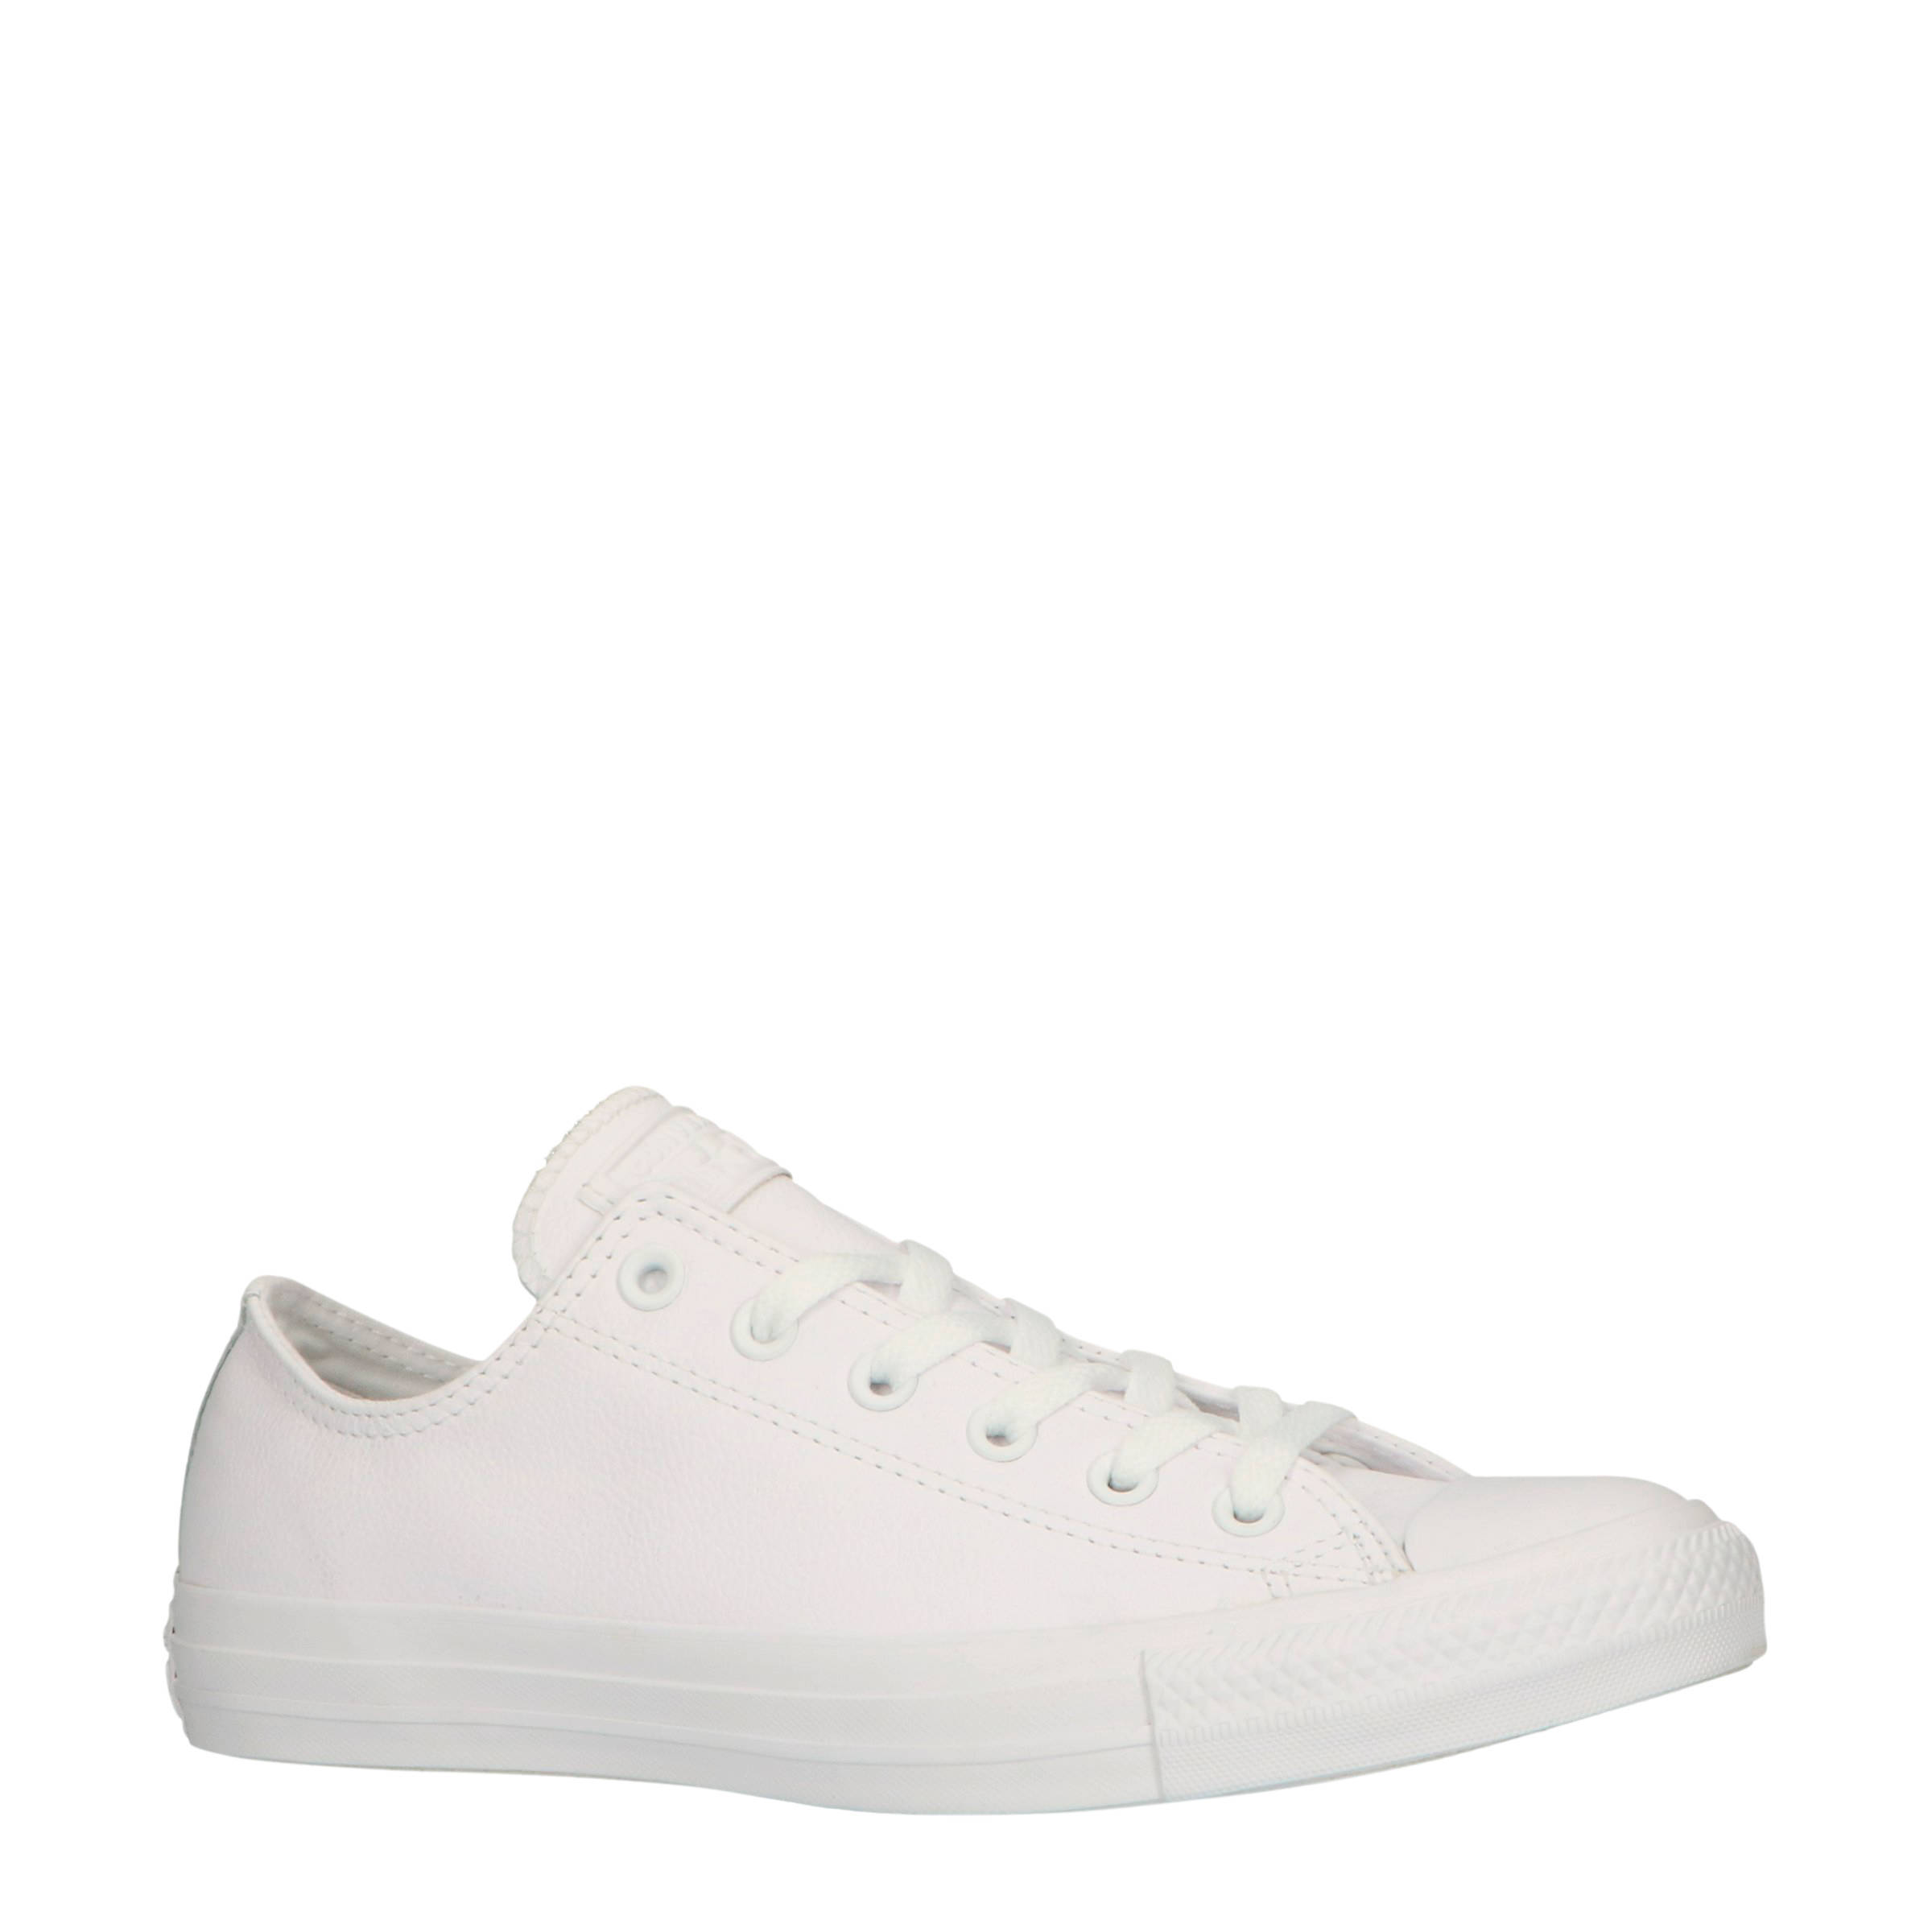 Converse Chuck Taylor All Star OX leren sneakers wit | wehkamp